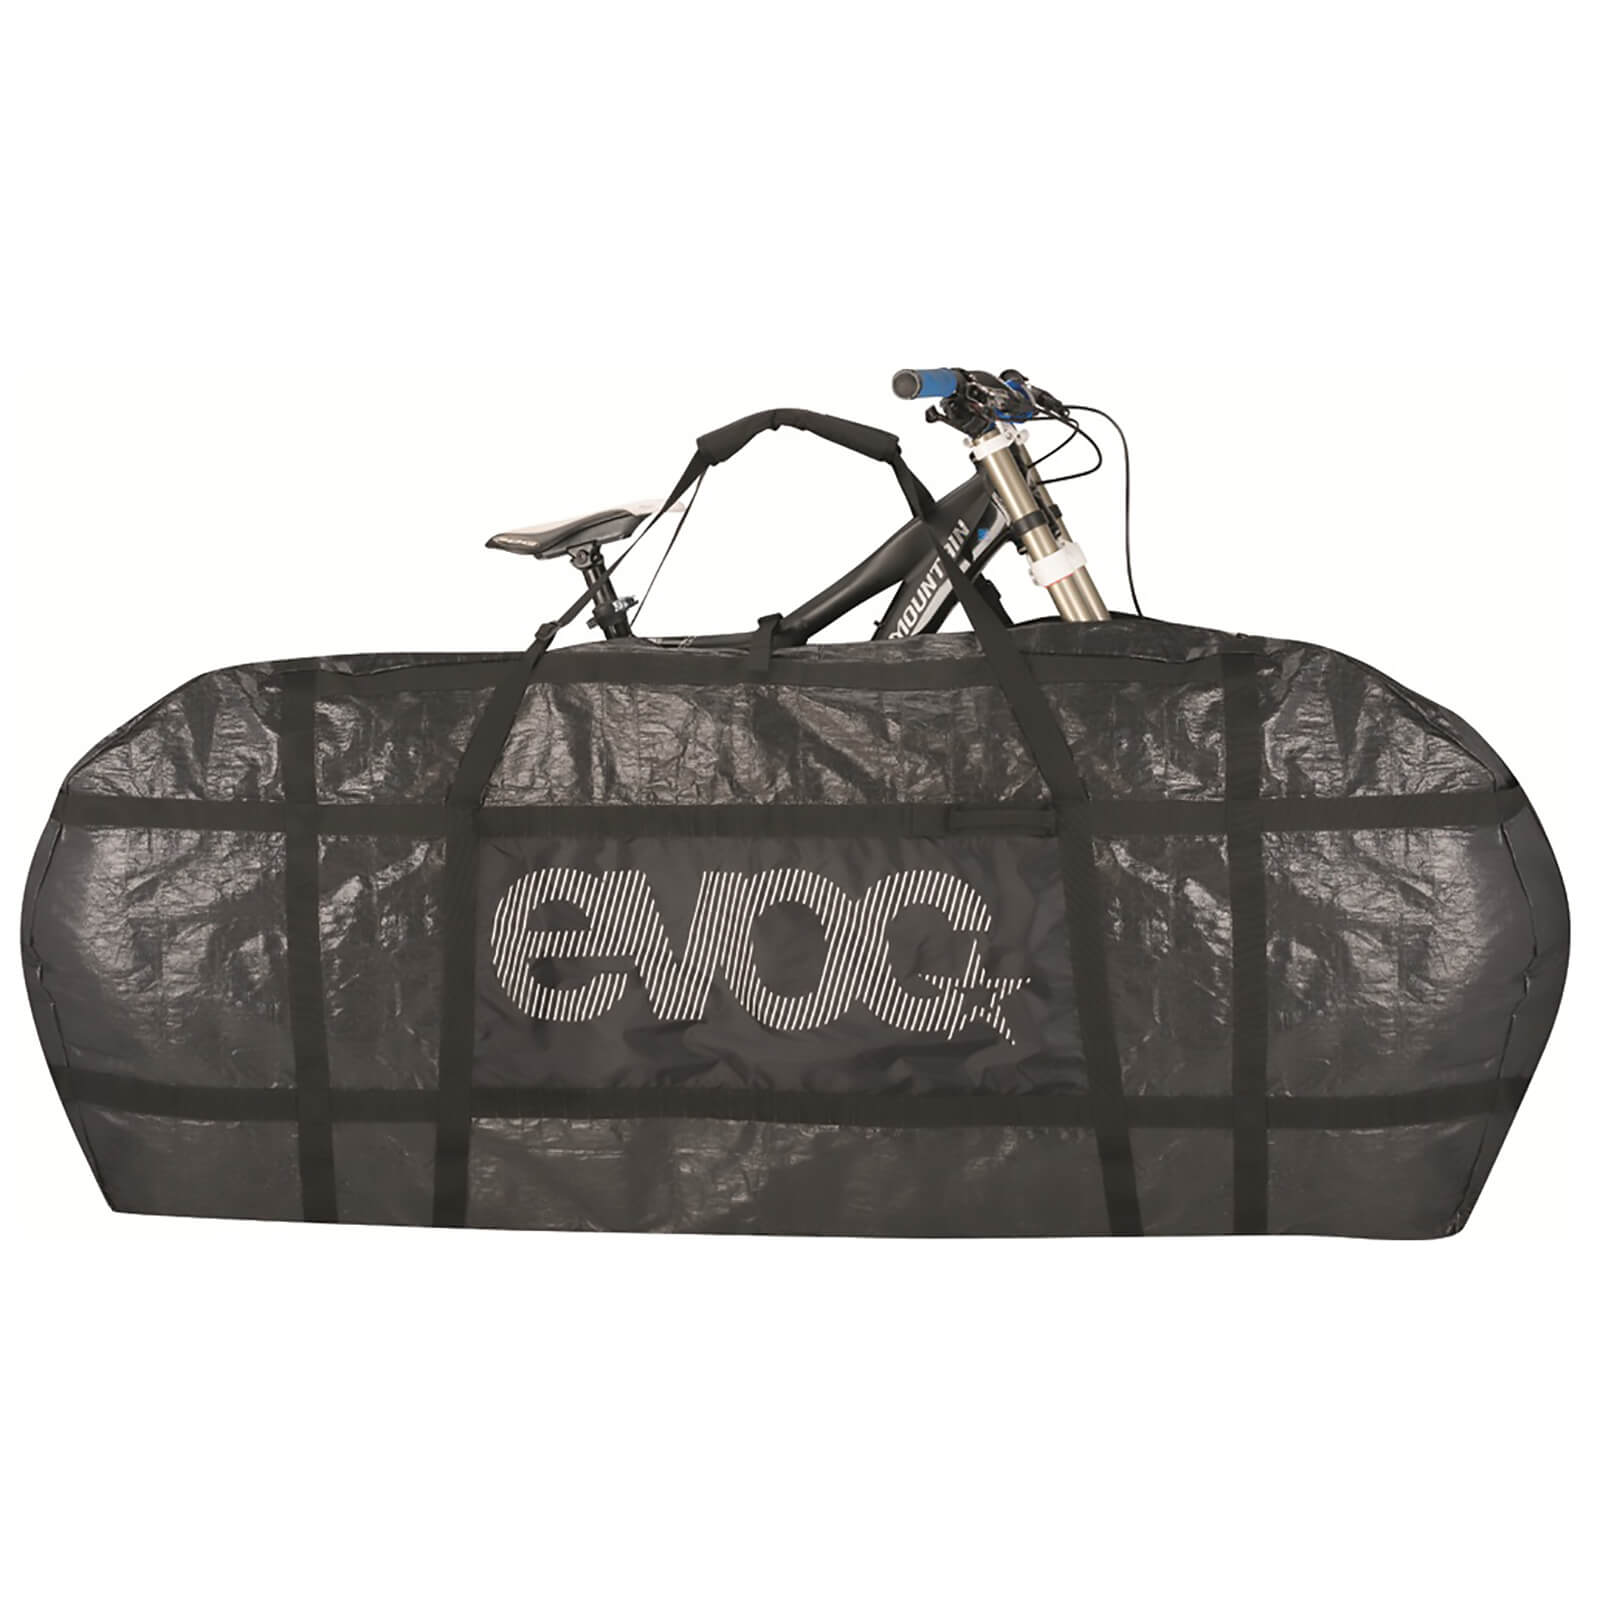 Evoc Bike Cover 360L/240L - Black